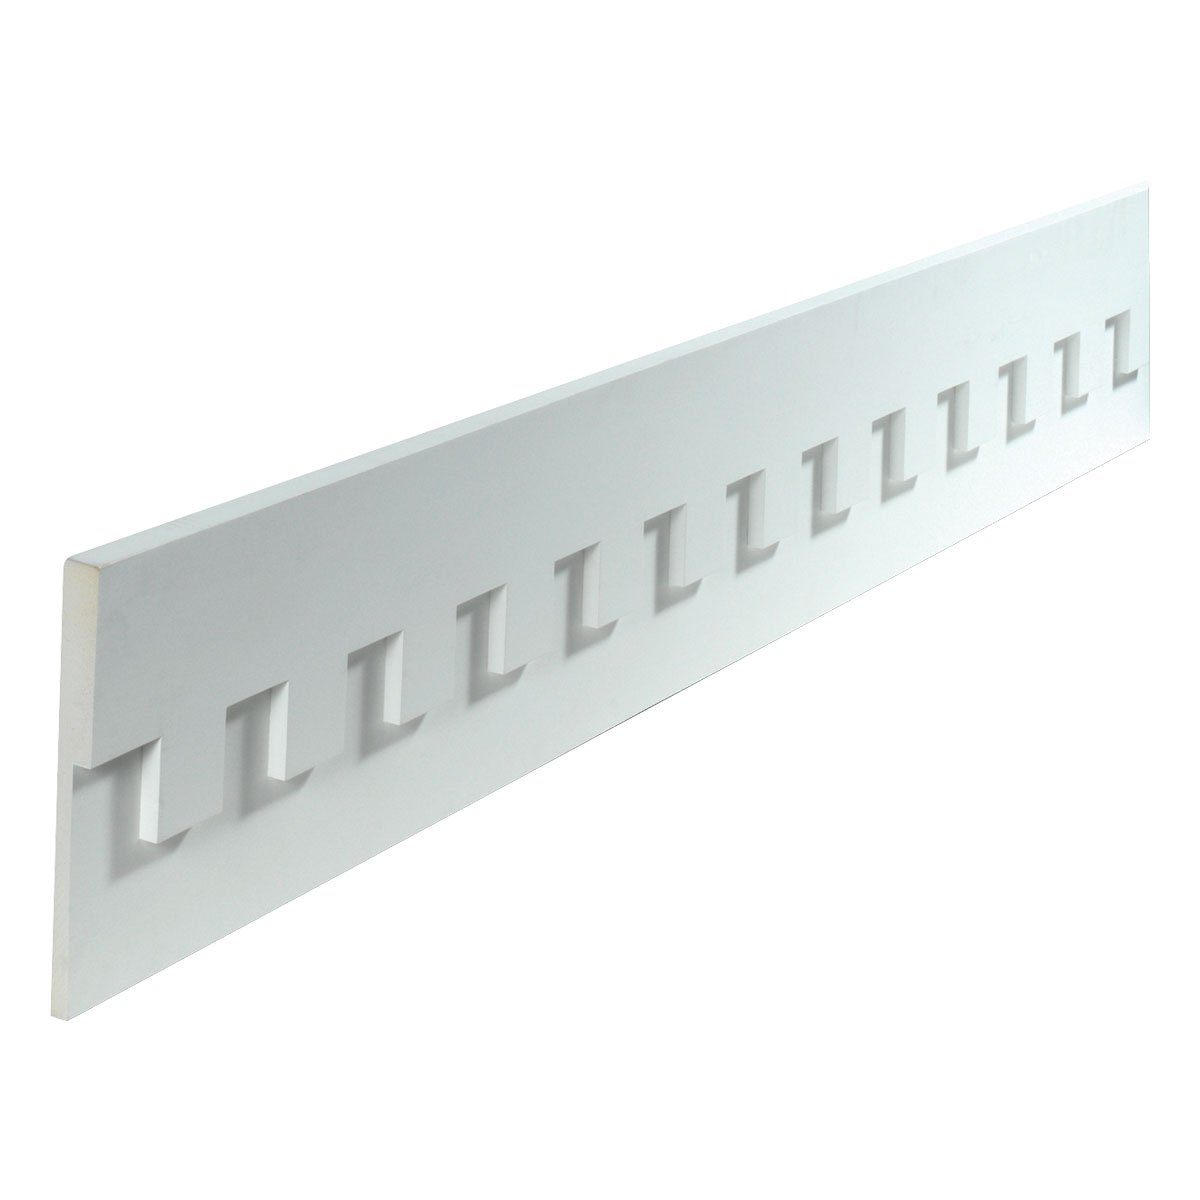 11 1/2W x 2 3/4T/S x 1 3/16P, 12' 4 1/2Length, Dentil Fascia Moulding 12' 4 1/2Length Fypon